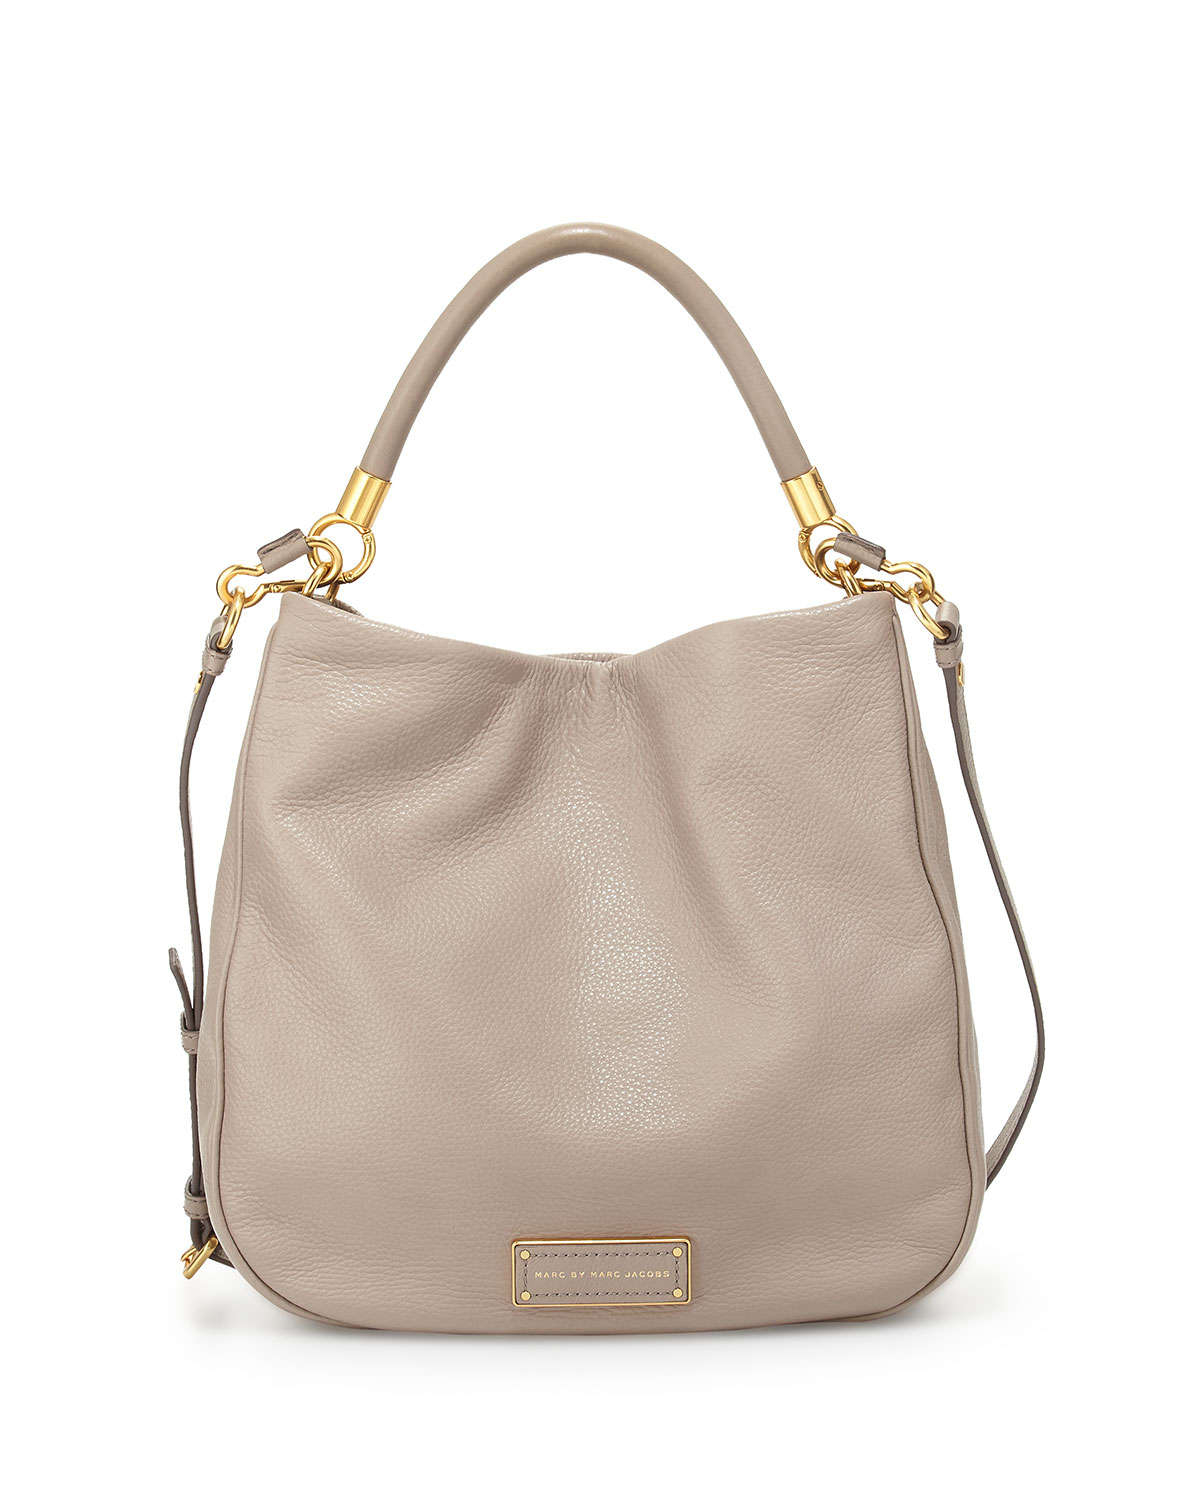 3424dd340856 Marc Jacobs Grey Leather Crossbody Bag nextprev prevnext Source · Lyst Marc  By Marc Jacobs Too Hot To Handle Hobo Bag in Natural